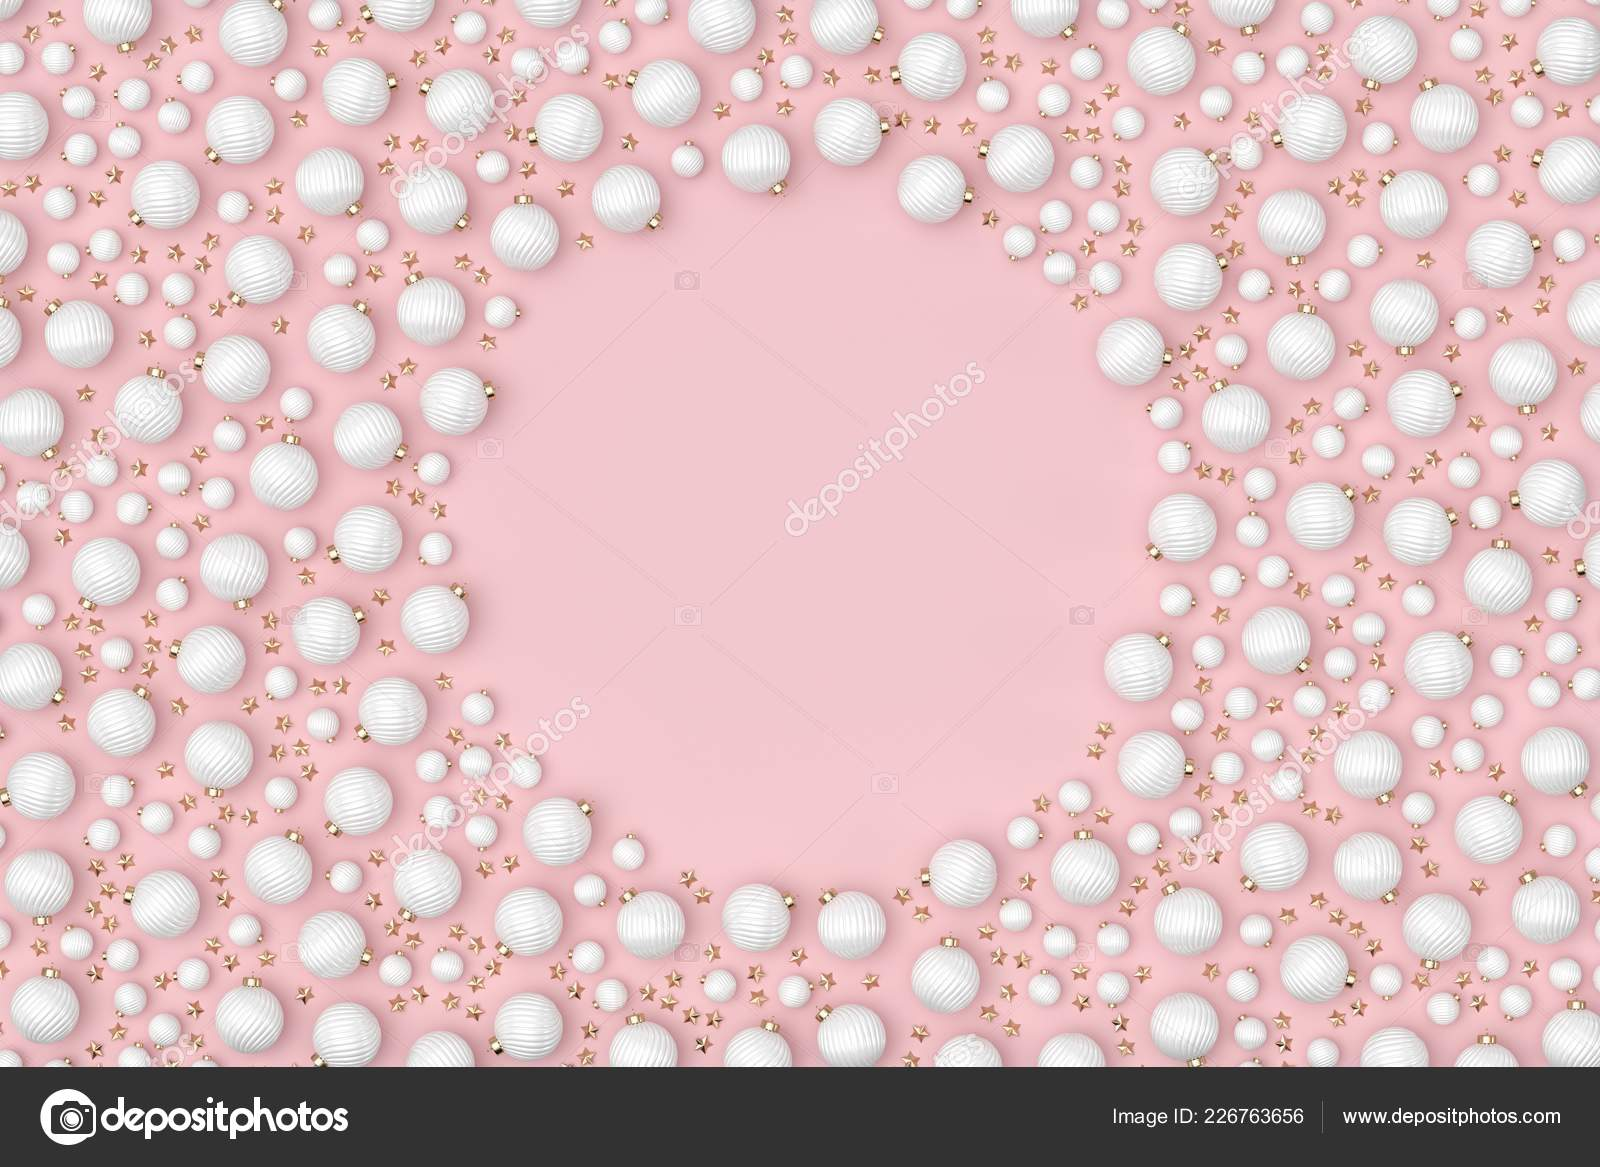 Scattered White Christmas Ornaments Pink Background Frame Stock